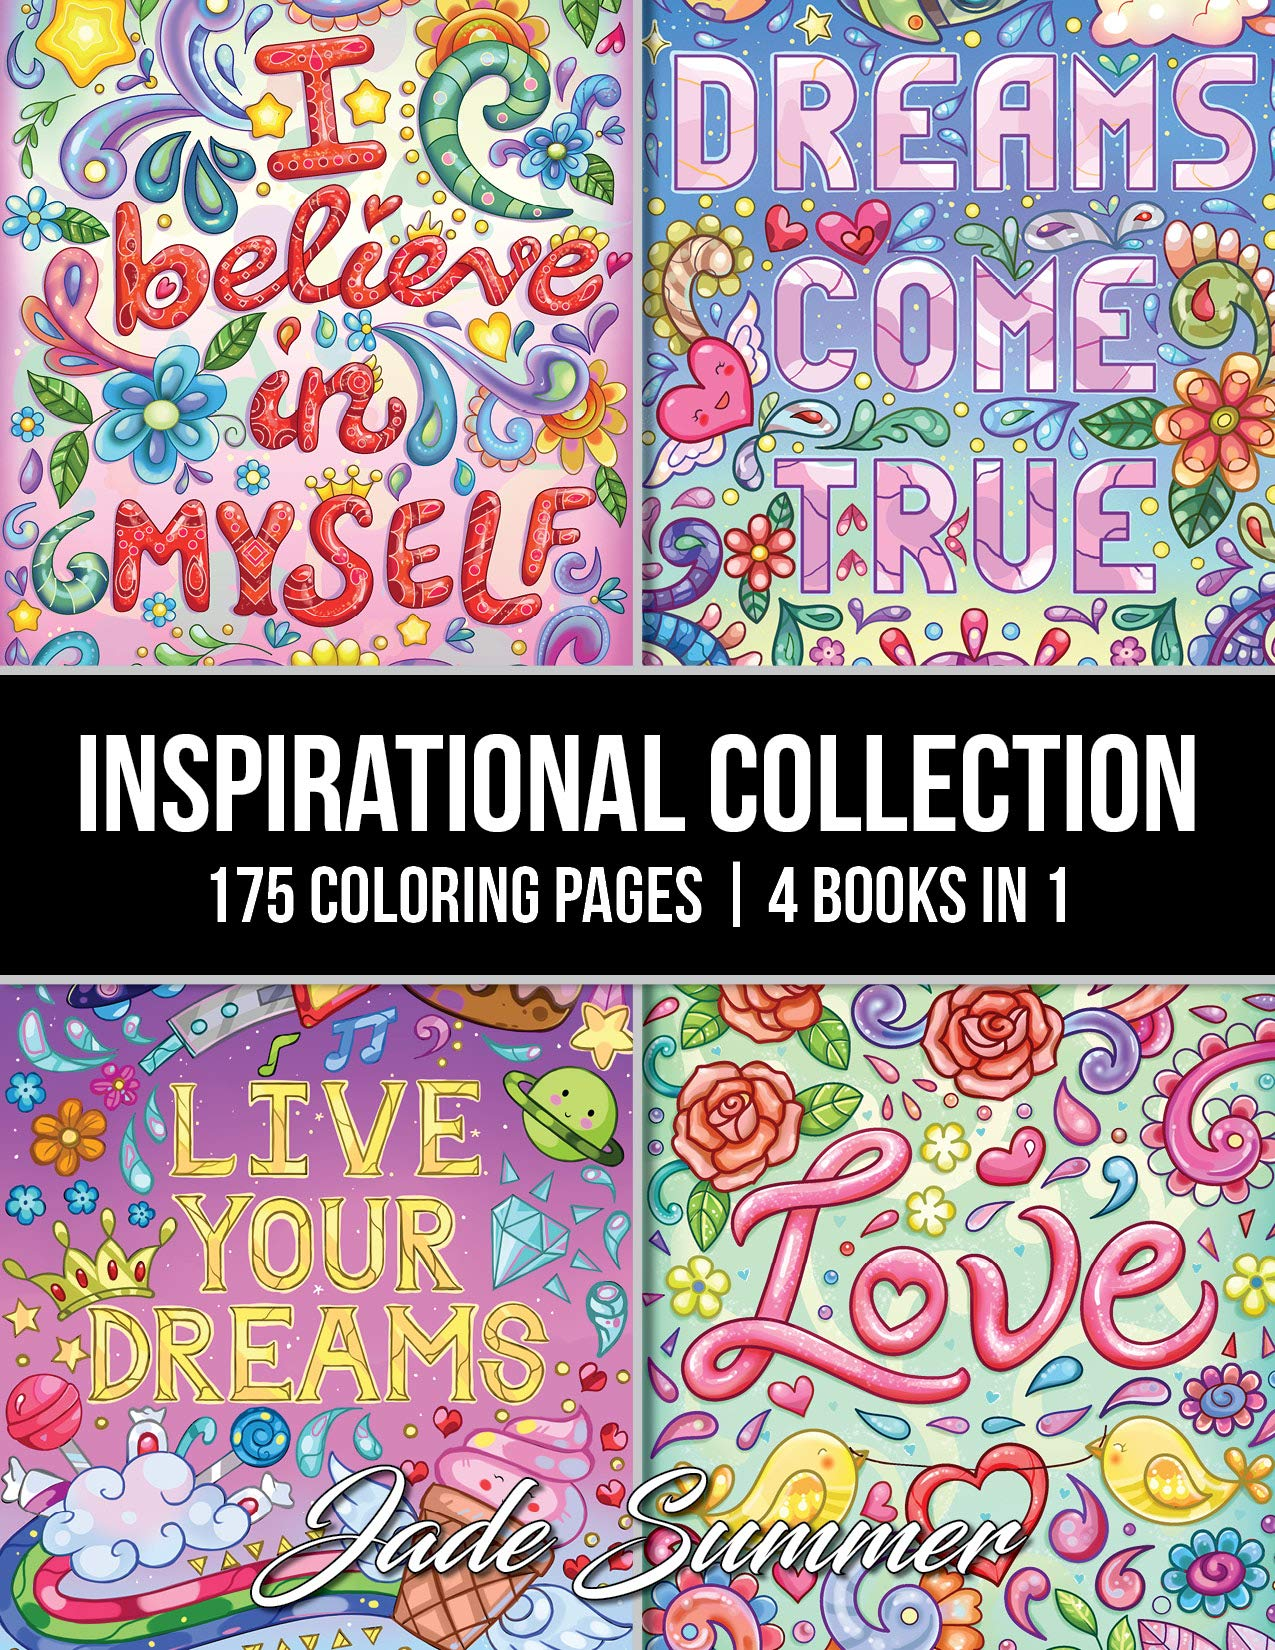 IMAGINE COLOR /& CREATE PATTERNS BRAND NEW ADULT COLORING BOOK DREAMS ART